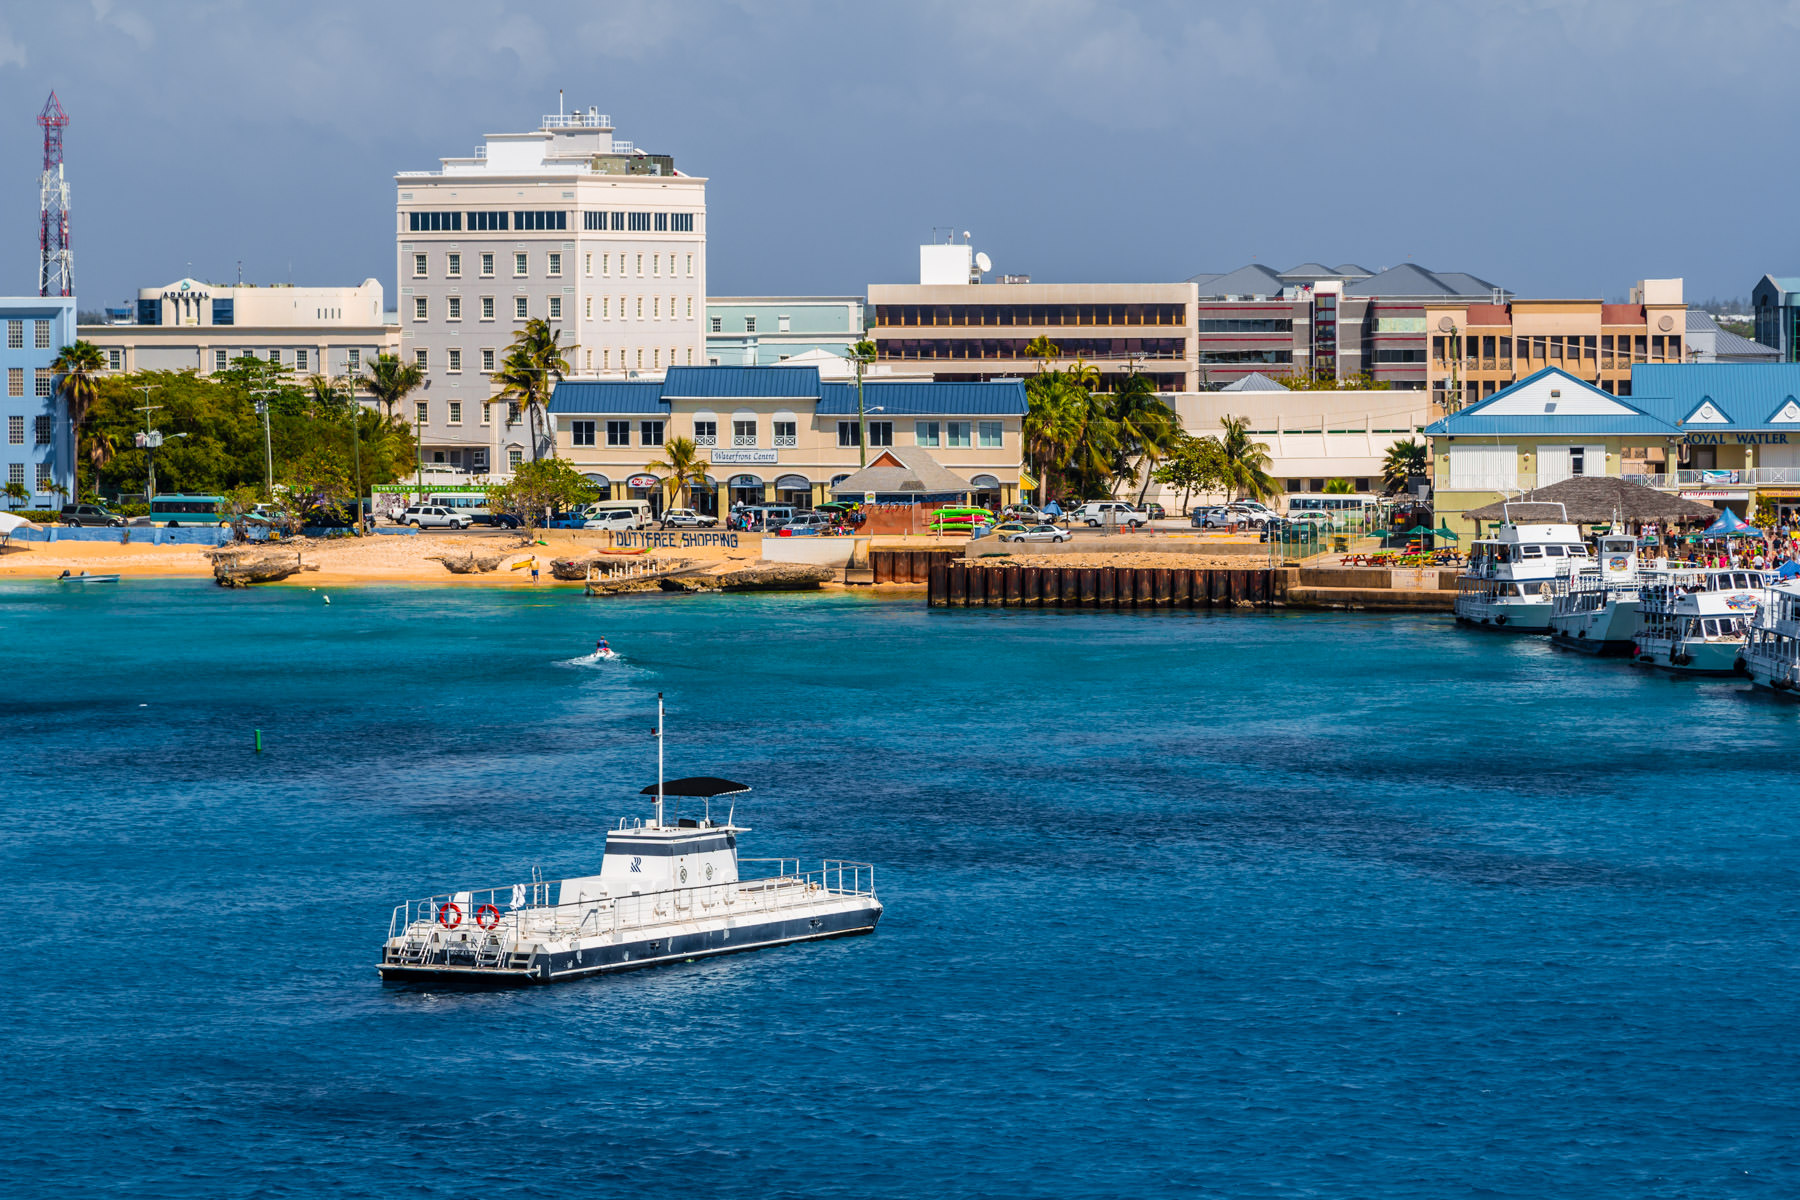 Low-slung buildings rise along the colorfulcoast of George Town, Grand Cayman.